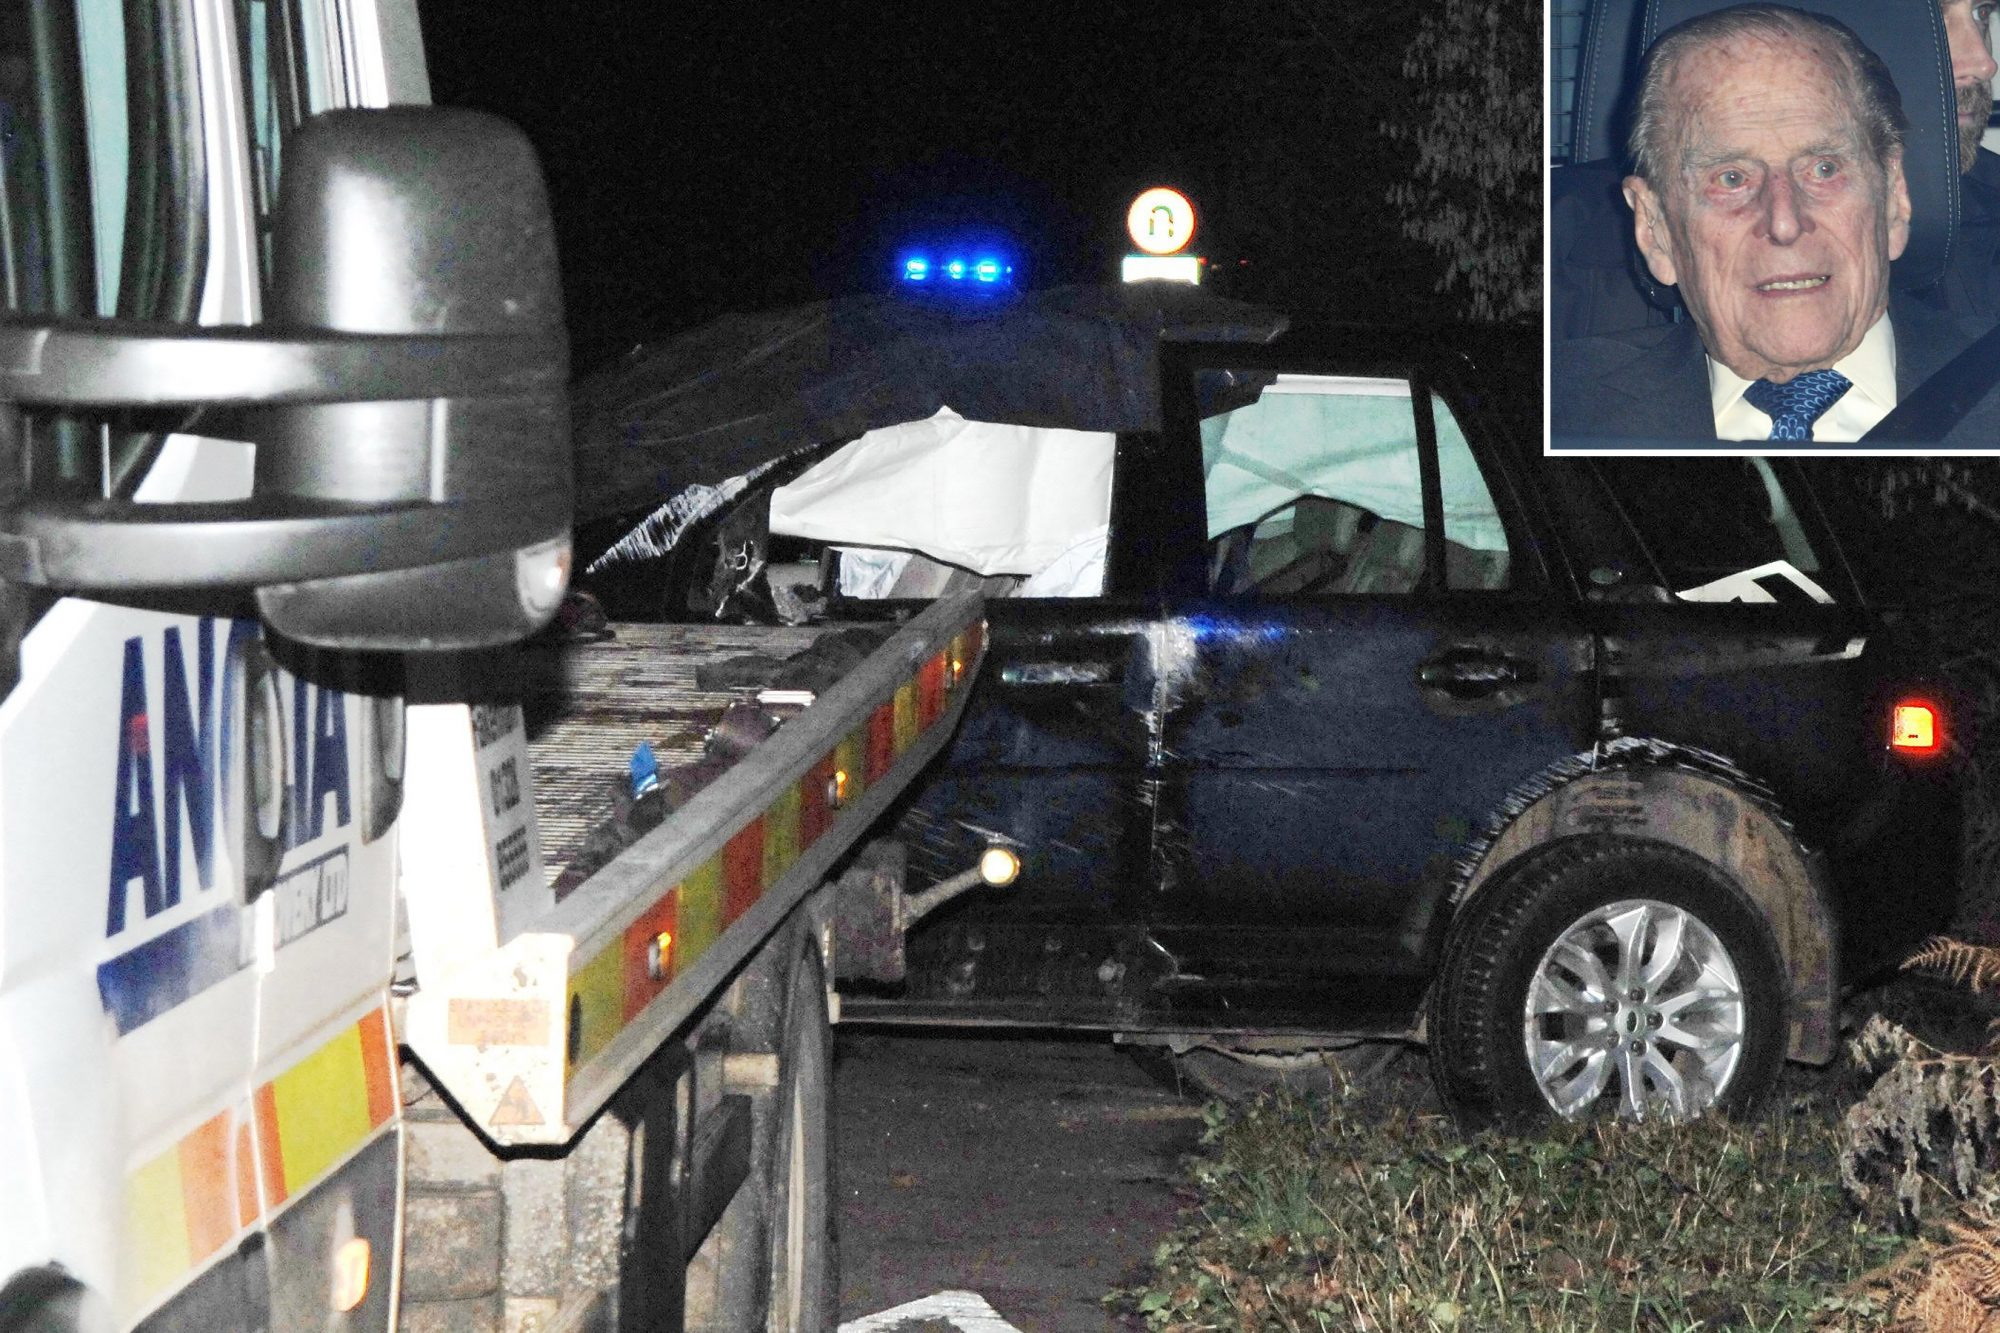 EXCLUSIVE: **PREMIUM RATES APPLY**Duke of Edinburgh, 97, is 'conscious but very shocked and shaken' with Queen at his side after crashing Range Rover and overturning it near Sandringham Estate